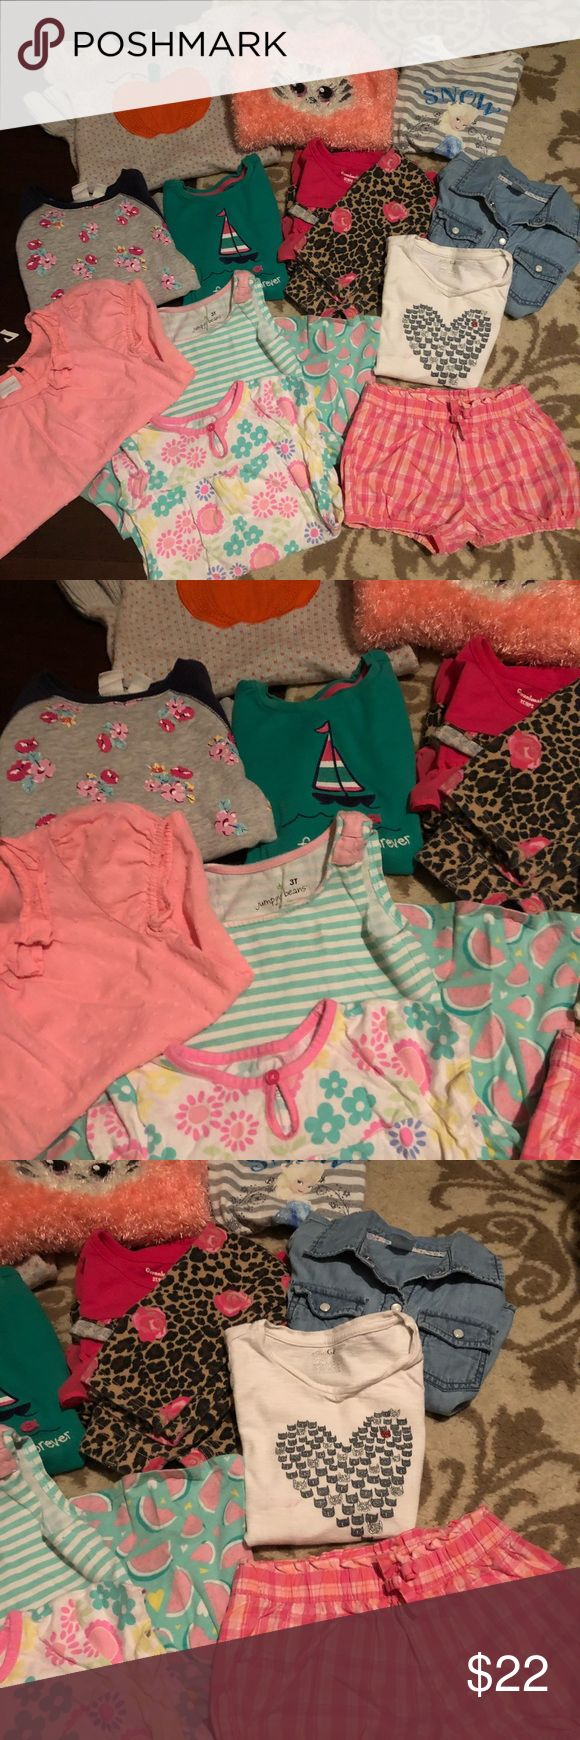 3t-4t • Bundle • Girls Items Mostly a bundle of 3t items. Some 4t mixed in that fits like a 3t. Two dresses, 6 long sleeve tops, 3 t shirts, one pair of shorts, one pair of pants. Some items are Gymboree, Carter's and more! Others are not name brand. All except two items are in EUC, just adding them in.   Tags: kids, girls, clothes, bundles, Gymboree, Carter's. Gymboree Shirts & Tops Tees - Long Sleeve